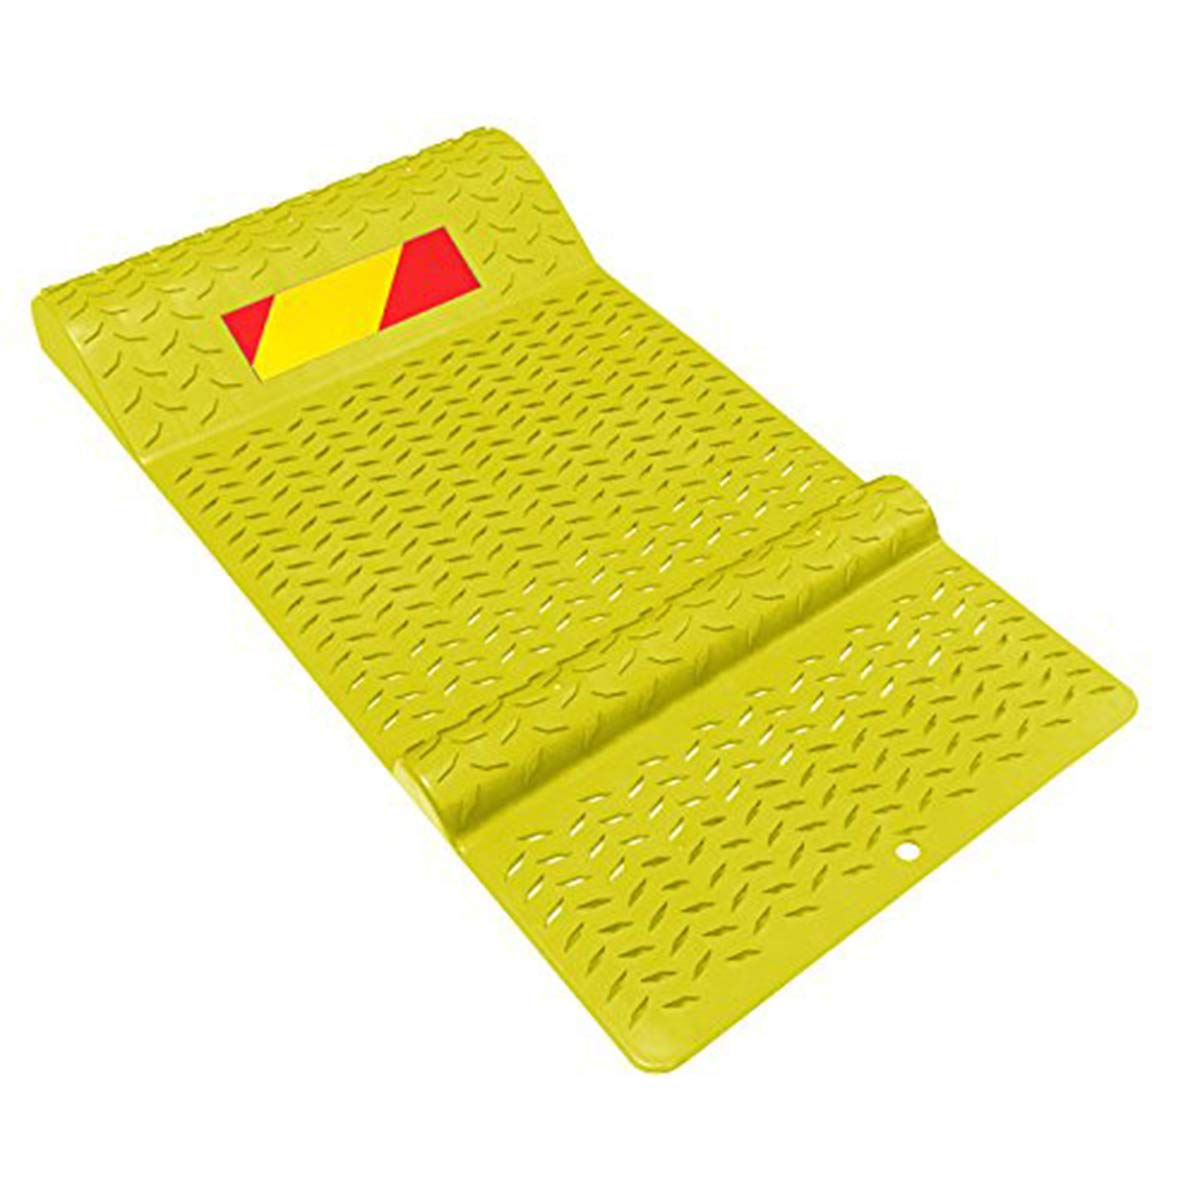 Electriduct Pack of 6 Pair of Plastic Park Right Parking Mat Guides for Garage Vehicles, Antiskid Car Safety - Yellow by Electriduct (Image #1)